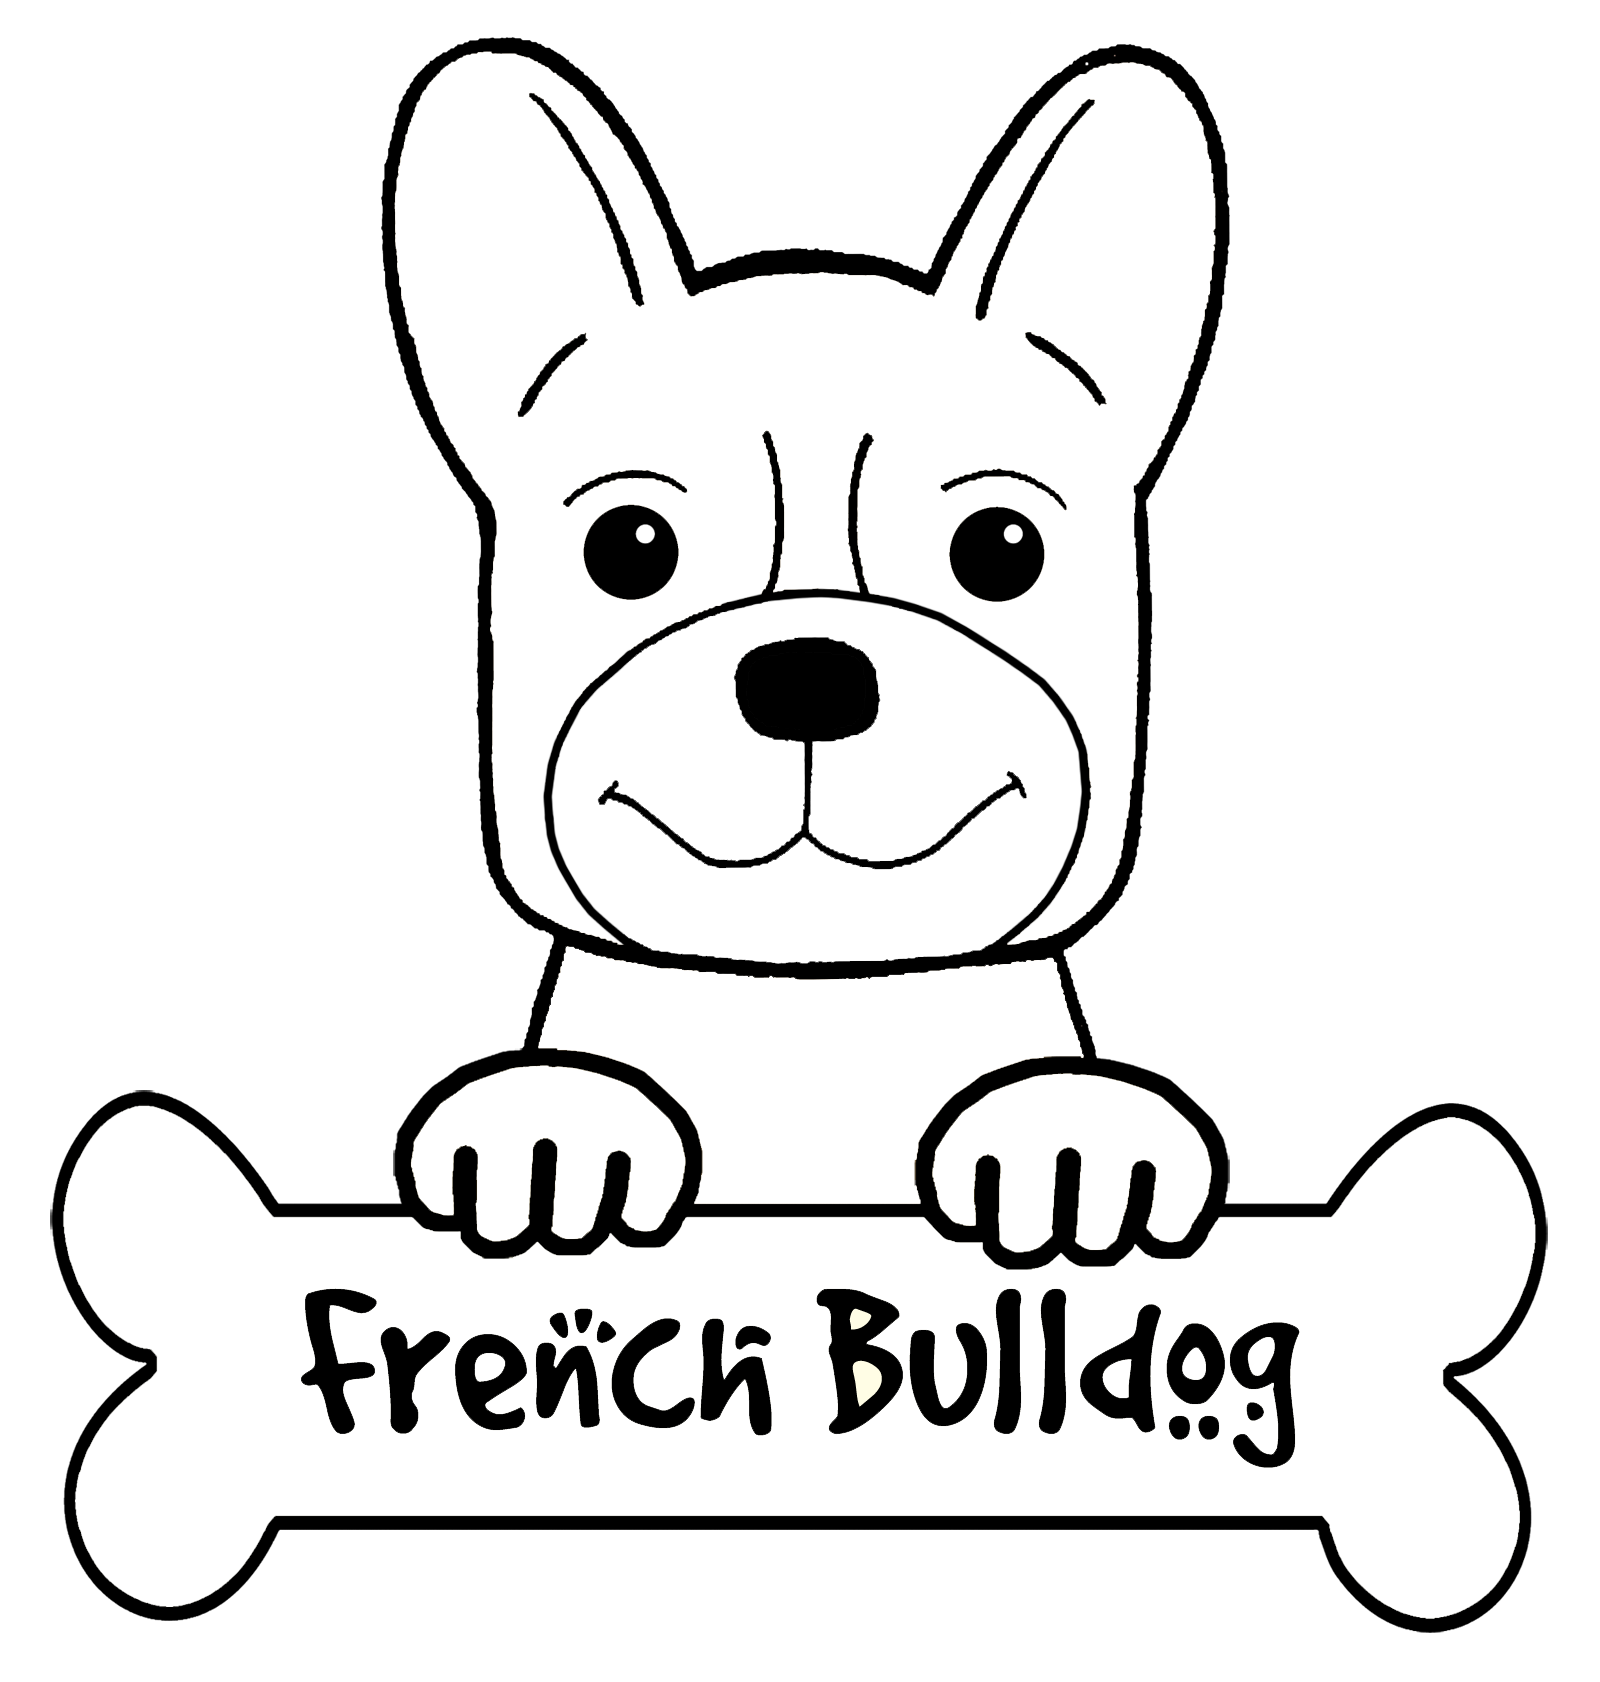 boston terrier coloring pages to print | Boston Terrier Coloring Pages Printable - Coloring Home